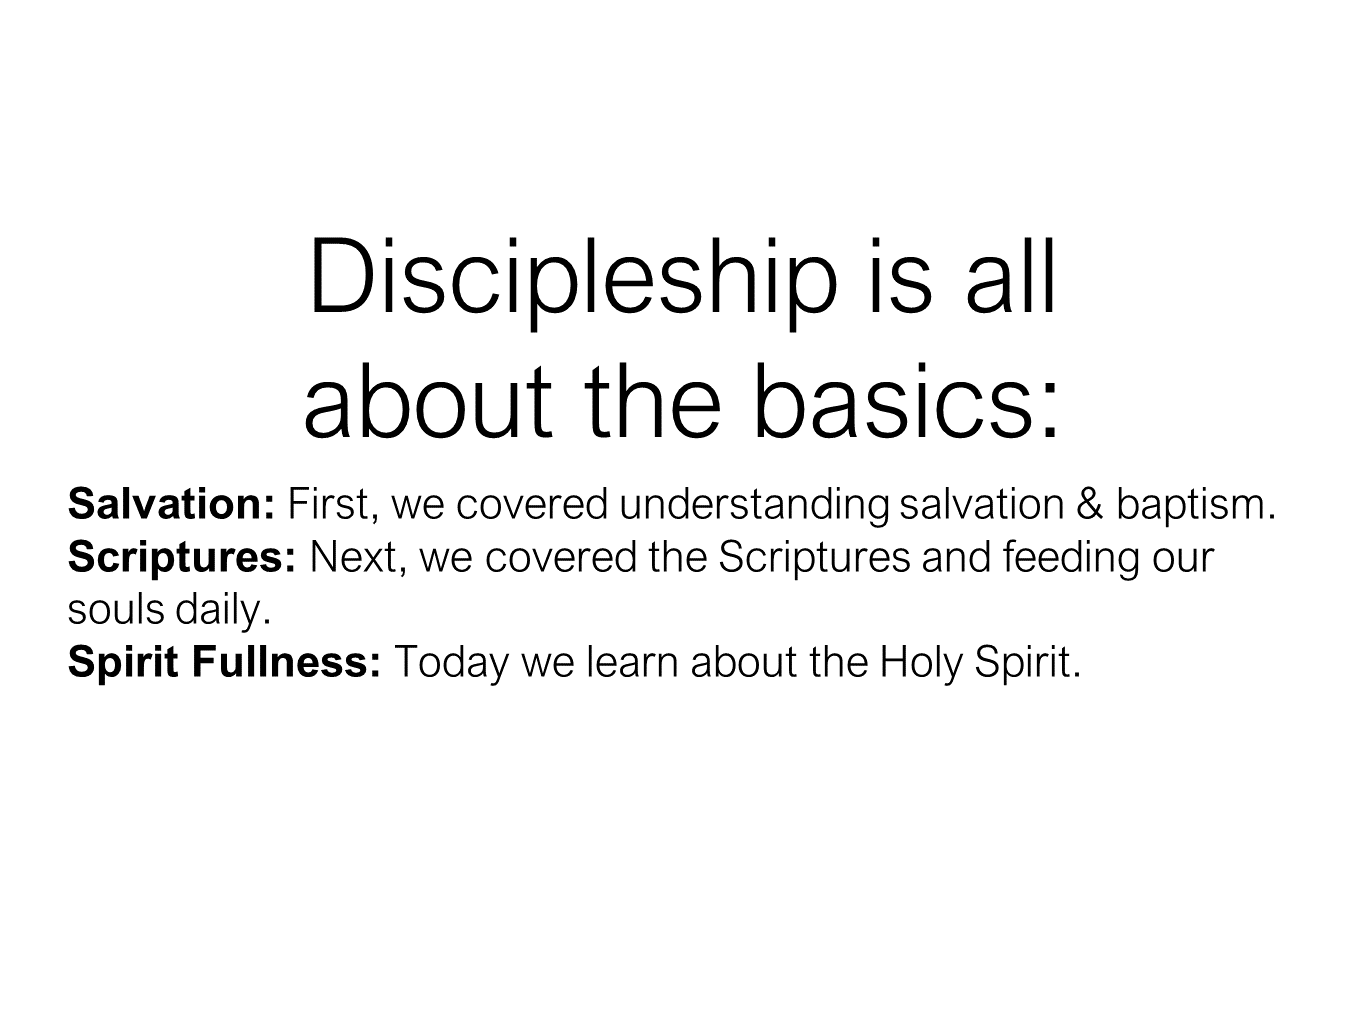 ESH-28 - Discipleship Lesson 4 - The Spirit Of God Teaching Them About The Source Of An Endl (20)